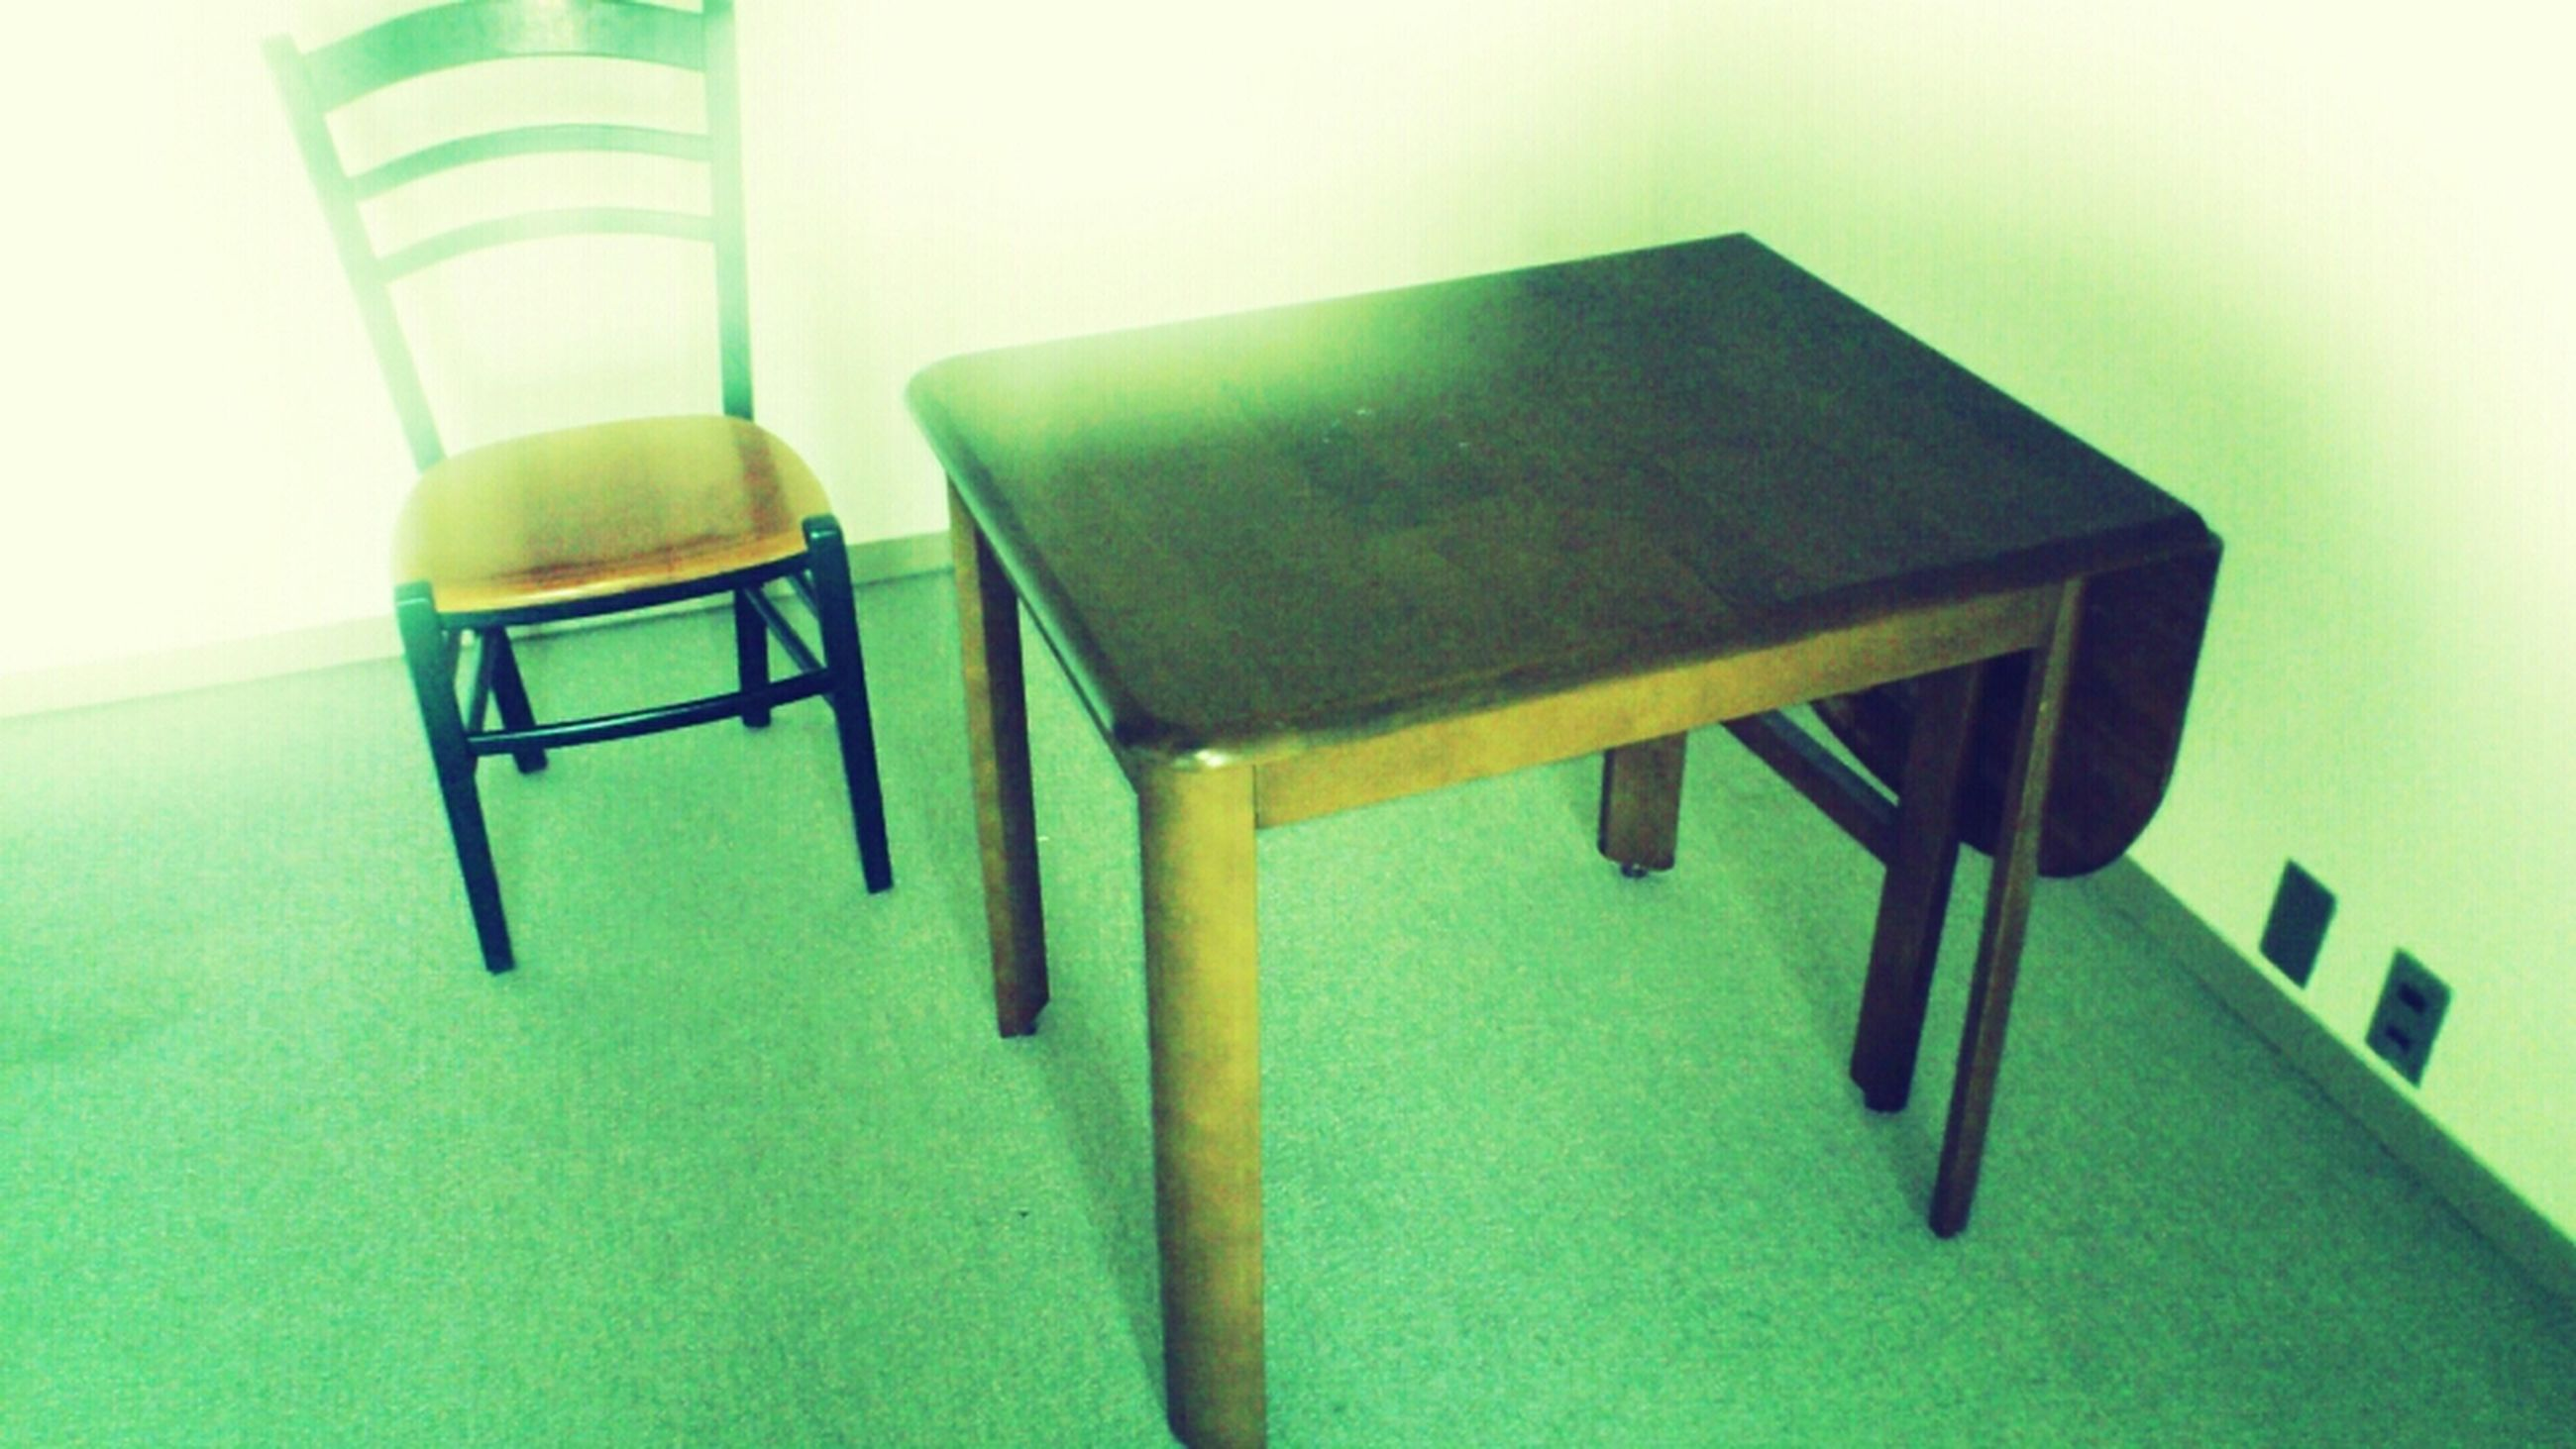 indoors, empty, absence, chair, table, still life, home interior, wall - building feature, furniture, no people, wall, seat, arrangement, in a row, shadow, group of objects, close-up, hanging, day, domestic room